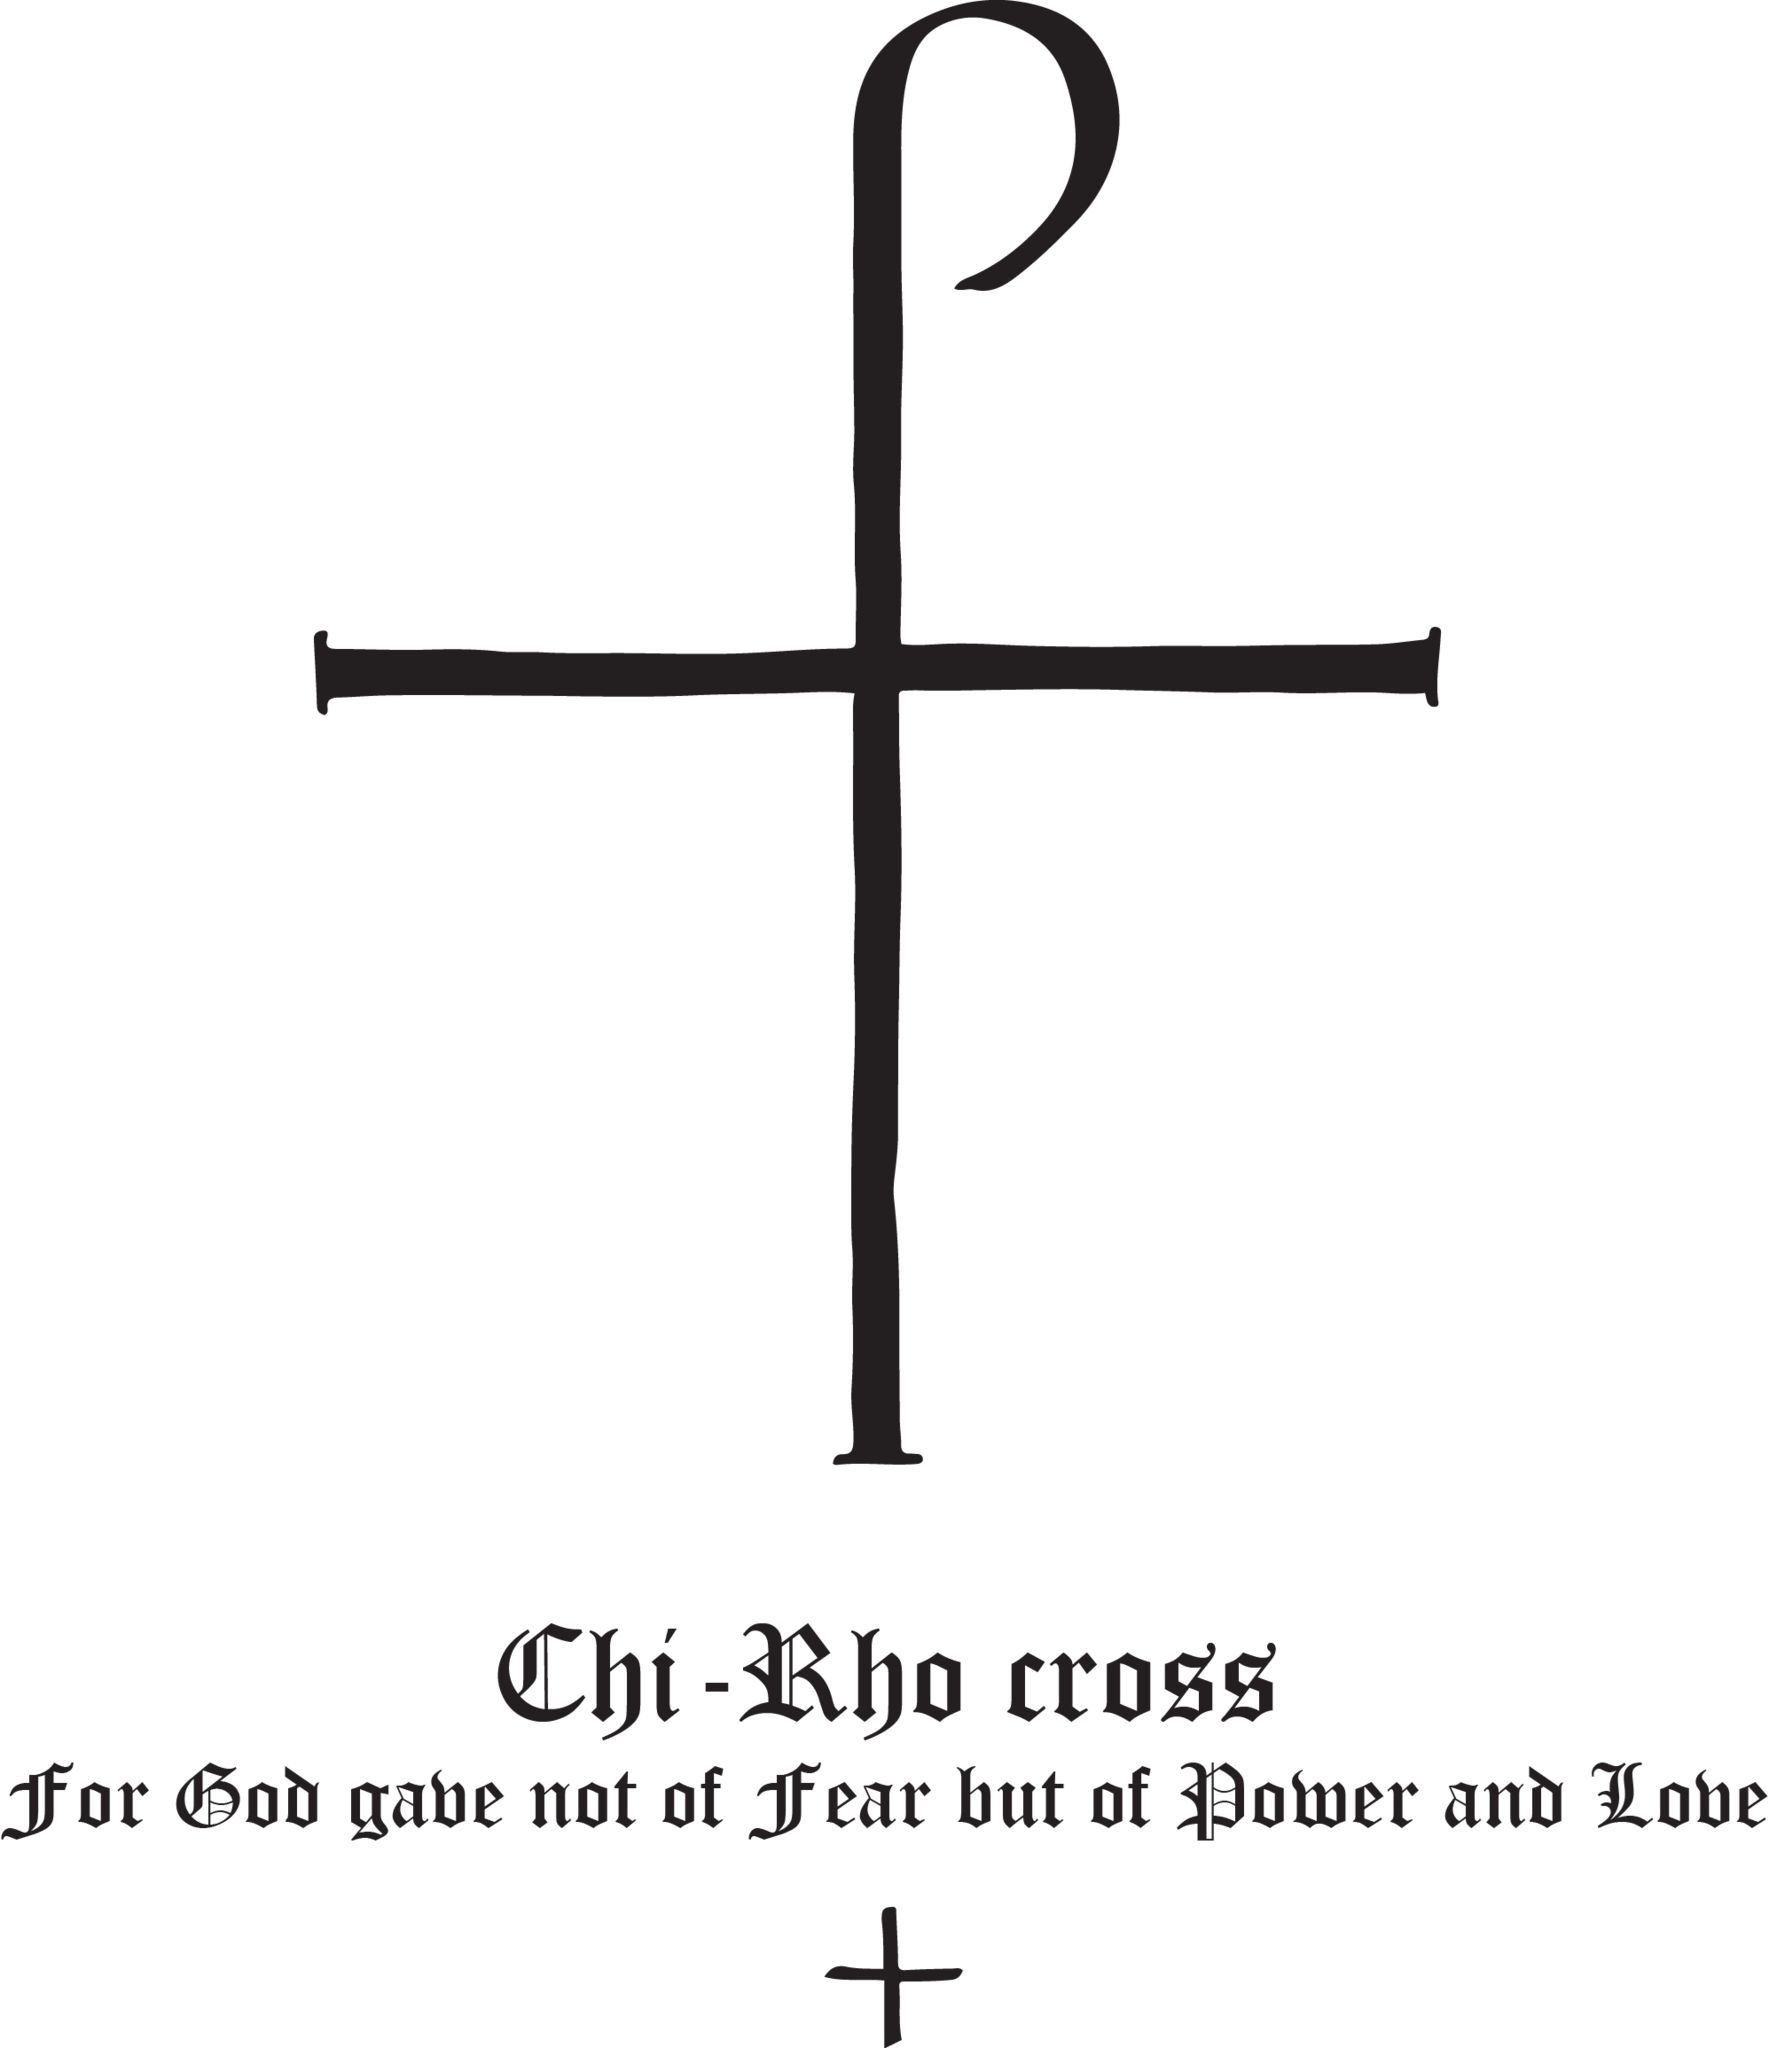 Rudolf koch christian symbol 125 chi rho cross chi rho show your support for your faith with rudolf kochs christian symbols these gorgeous and eternally christian symbolschi rho buycottarizona Images